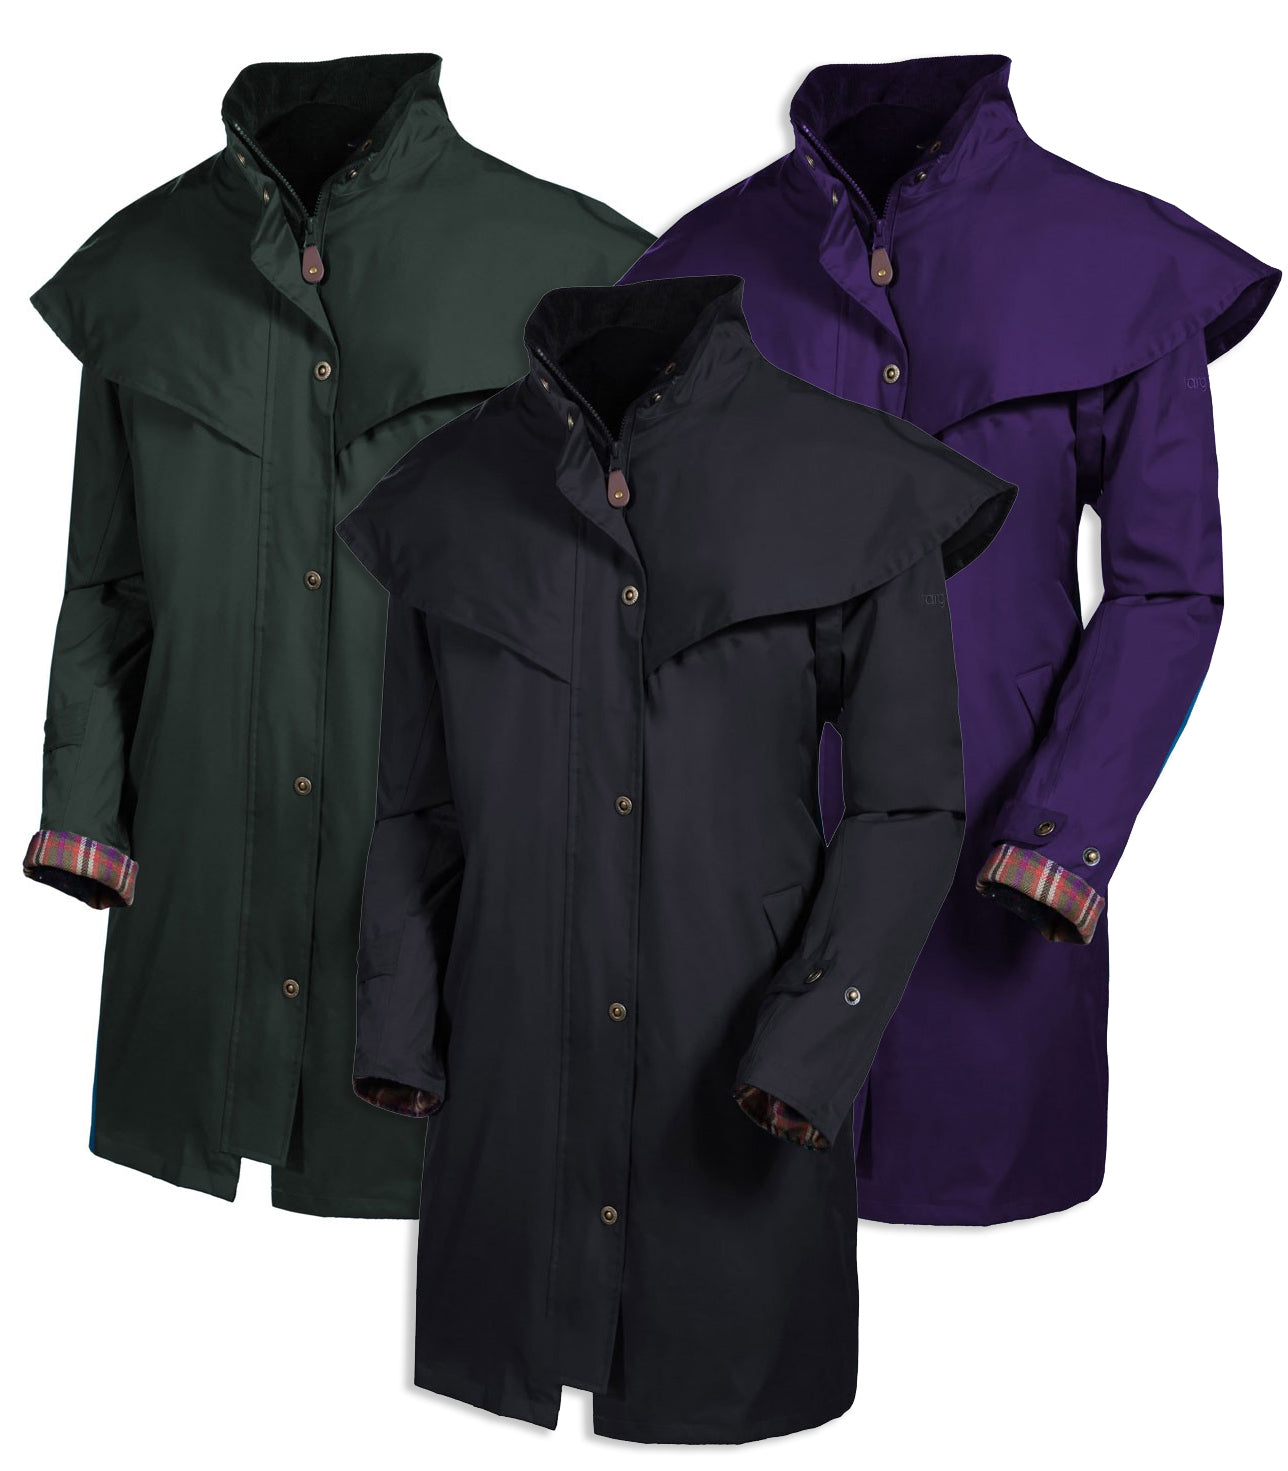 Target Dry Outrider 2 Three Quarter Length Waterproof Coat